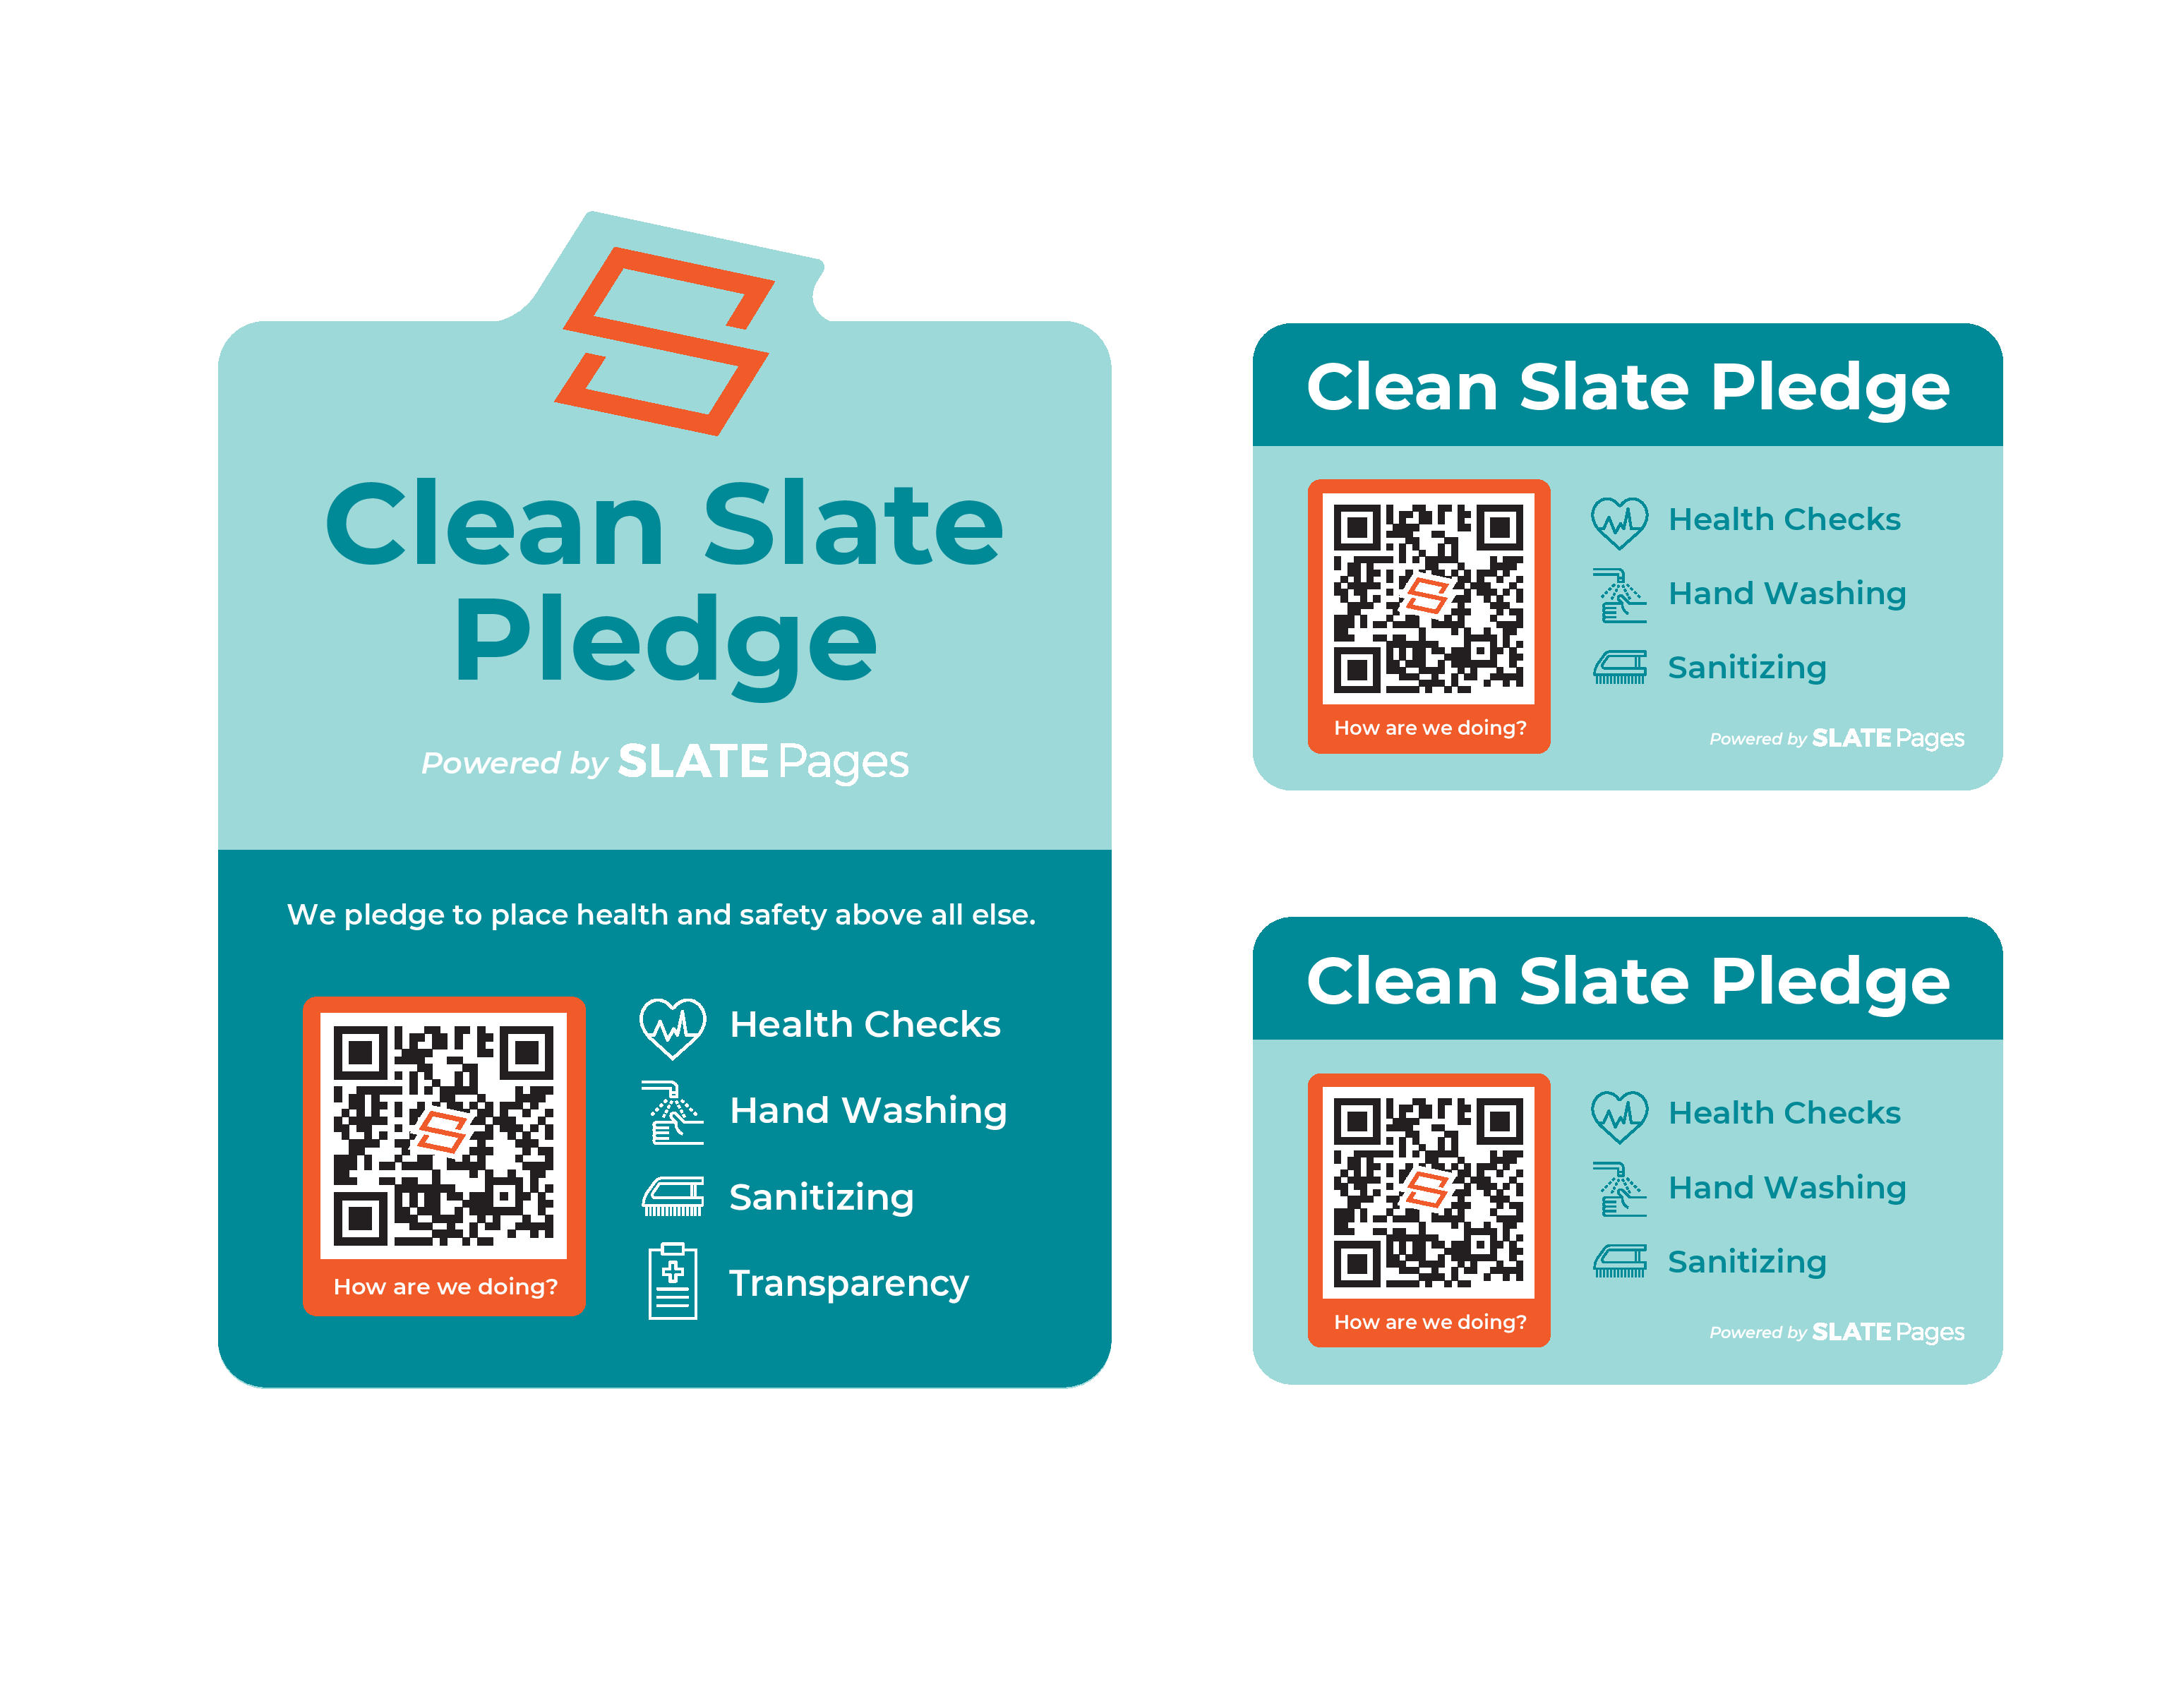 Clean Slate Pledge: COVID-19 Health Screening Solution